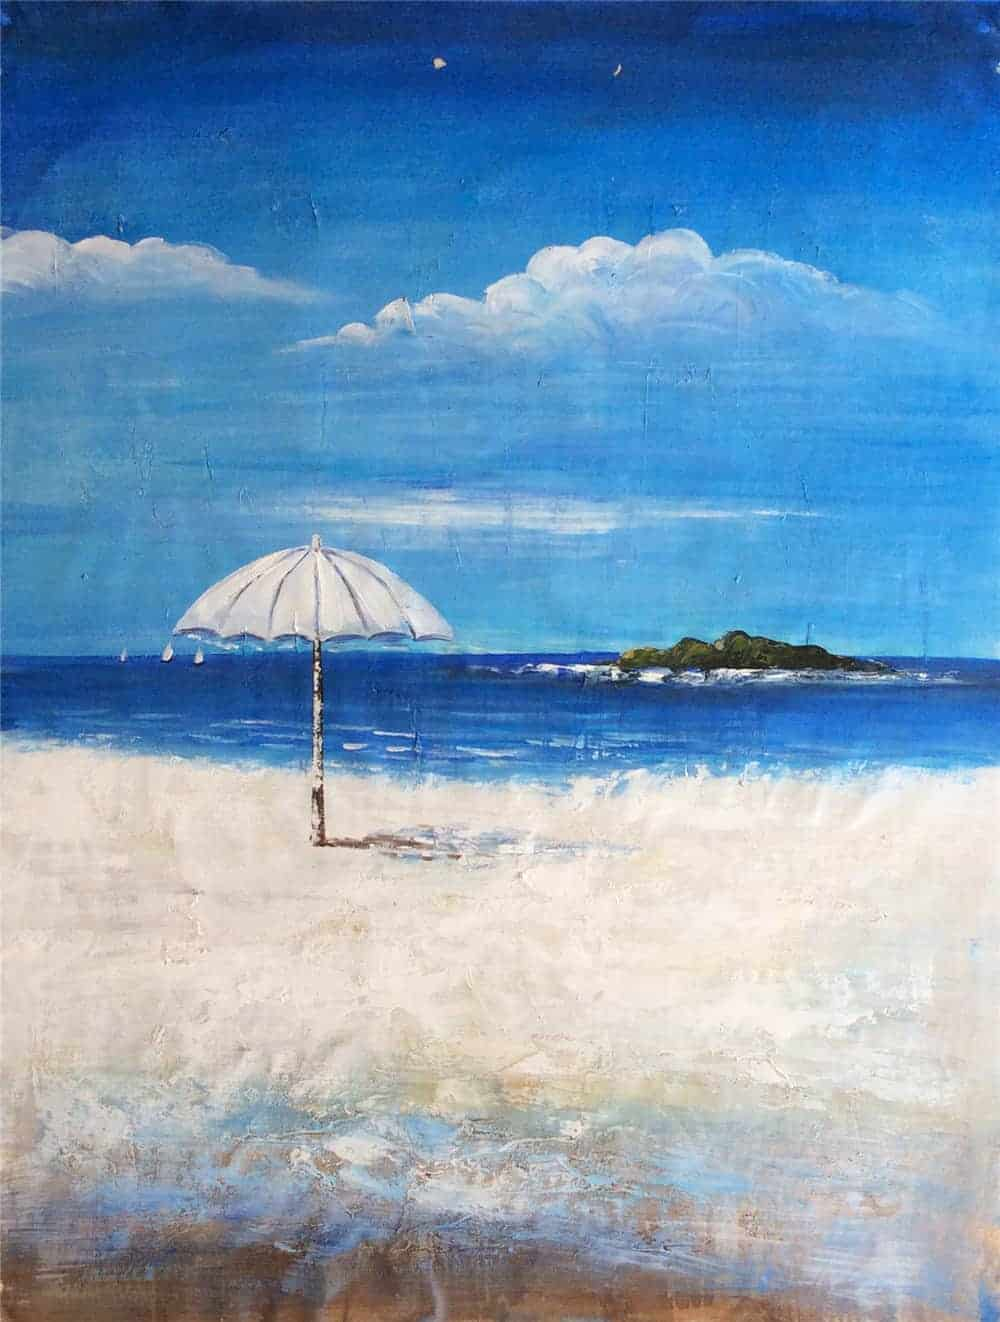 IN STOCK - $440 - Unframed Oil Paint - Summer Day on Beach - 90x120cm